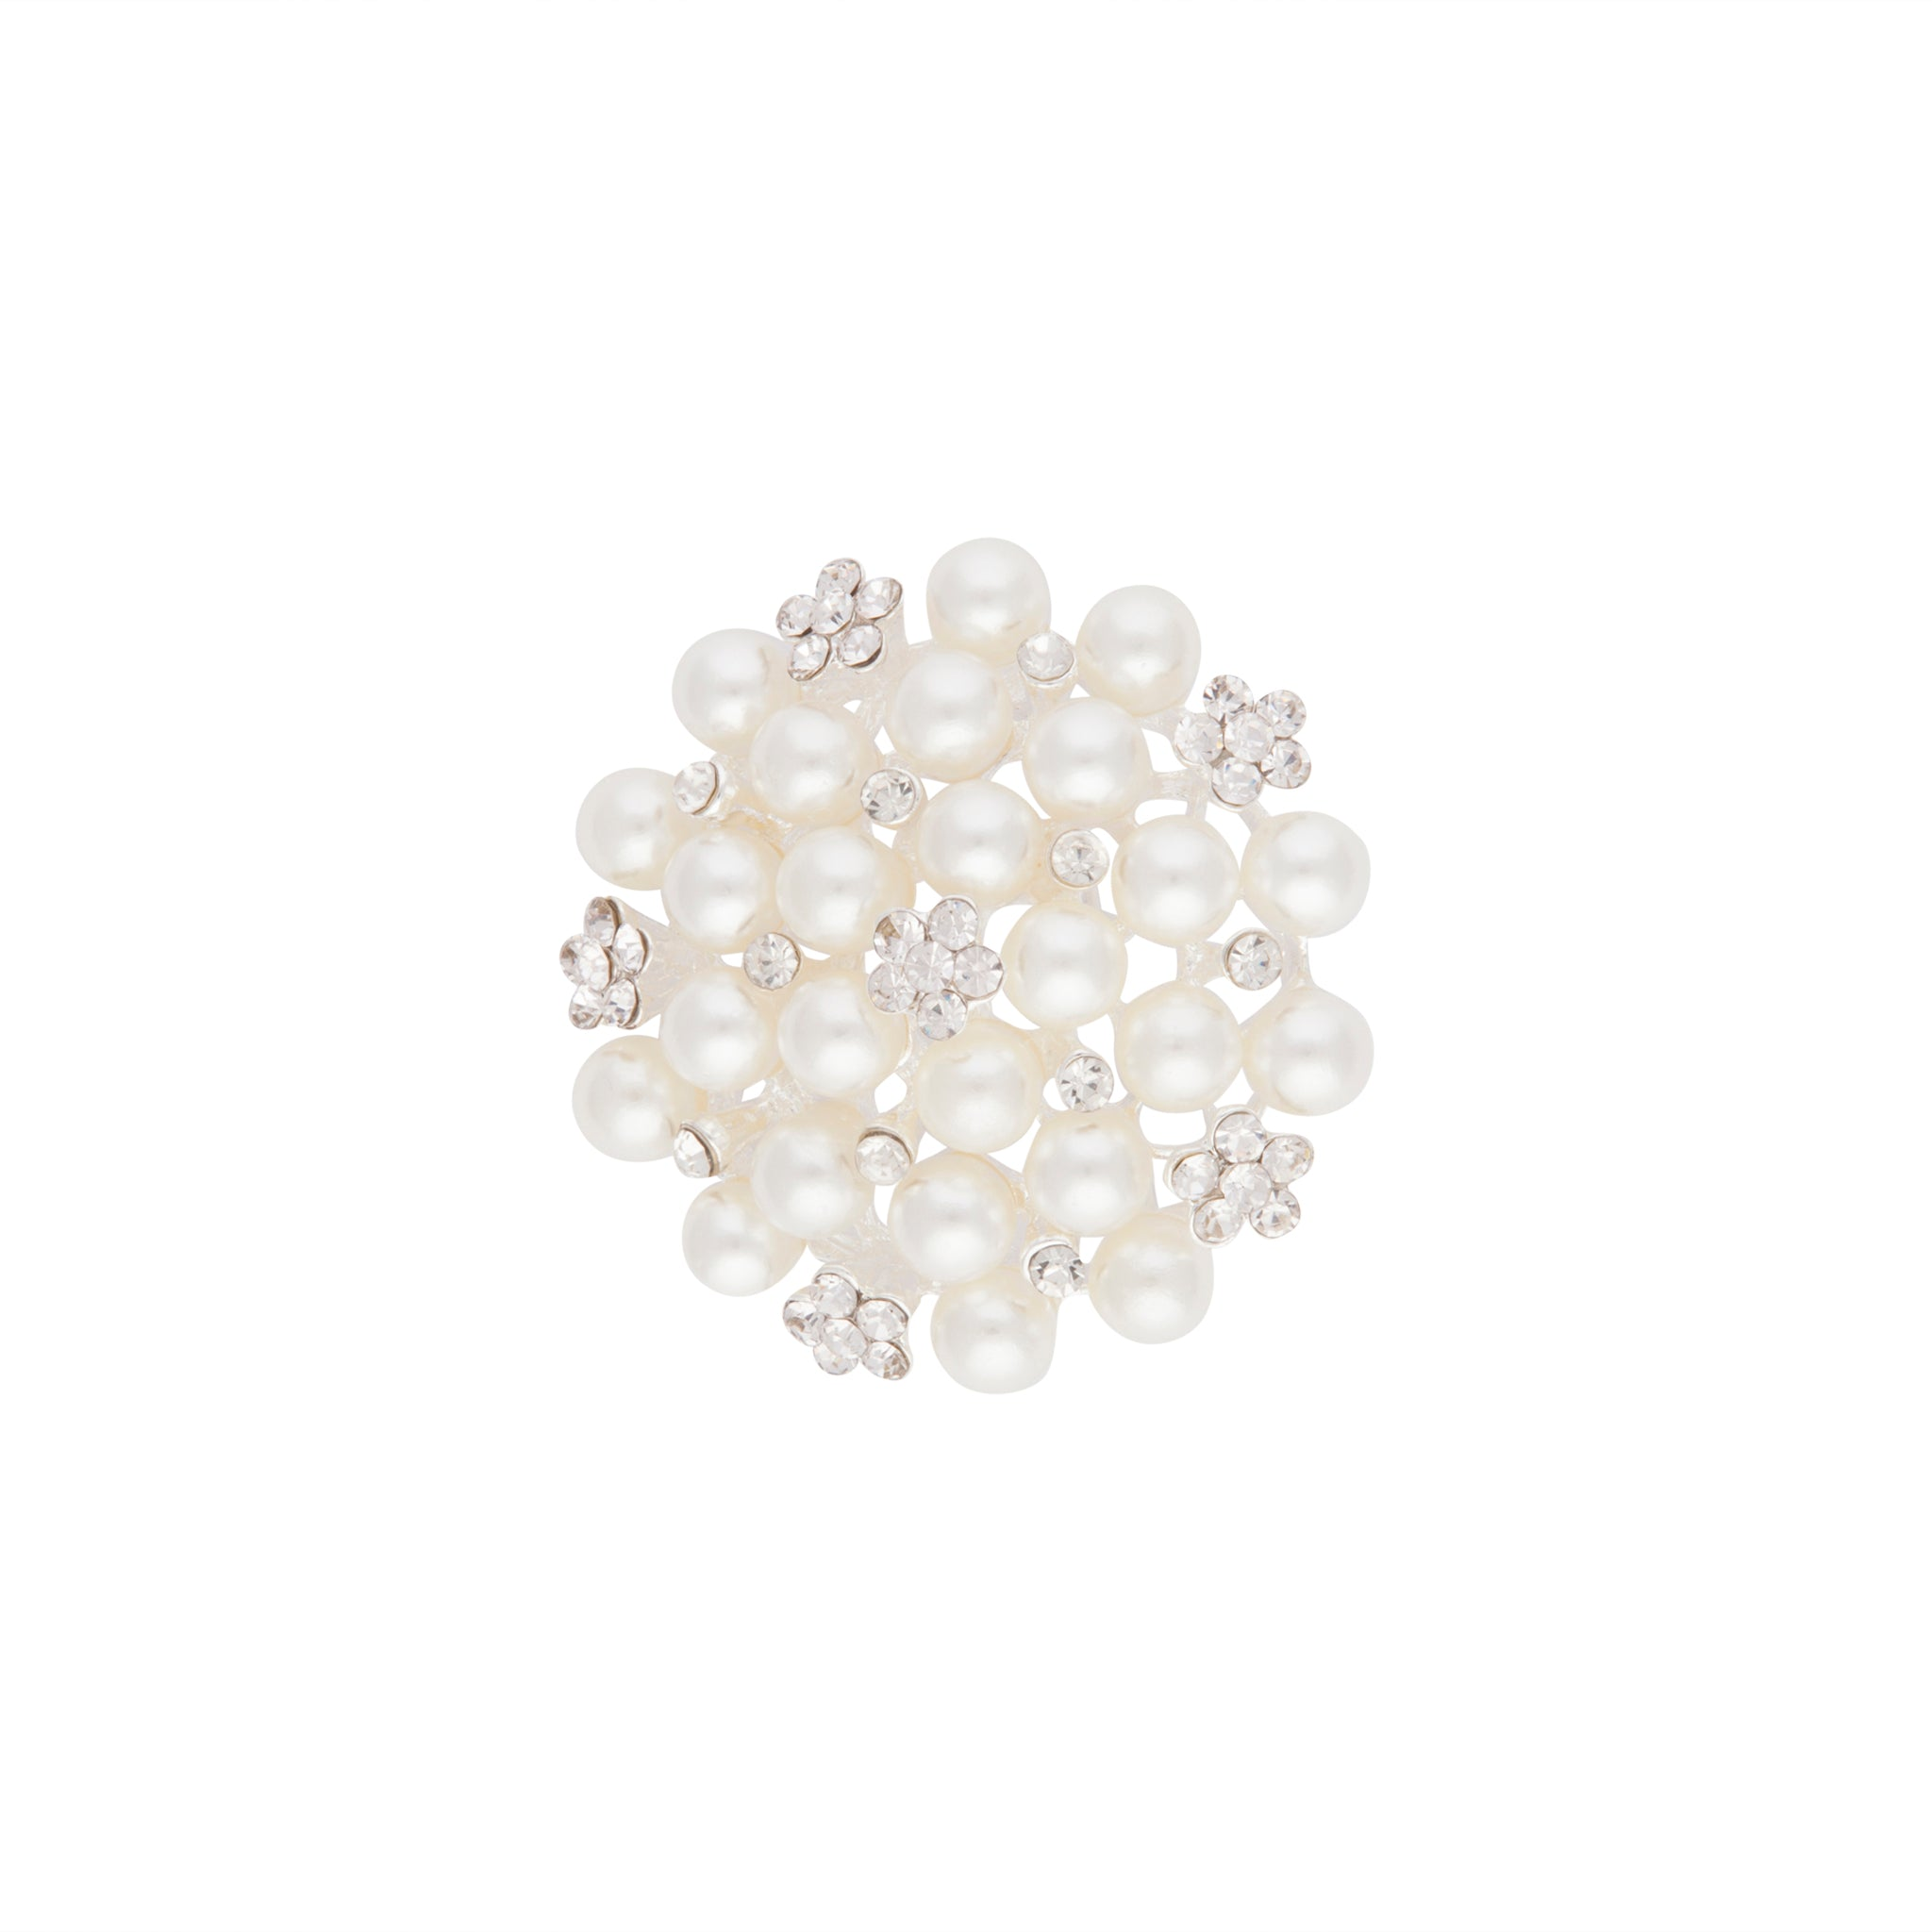 Silver Sparkle Pearl Cluster Brooch